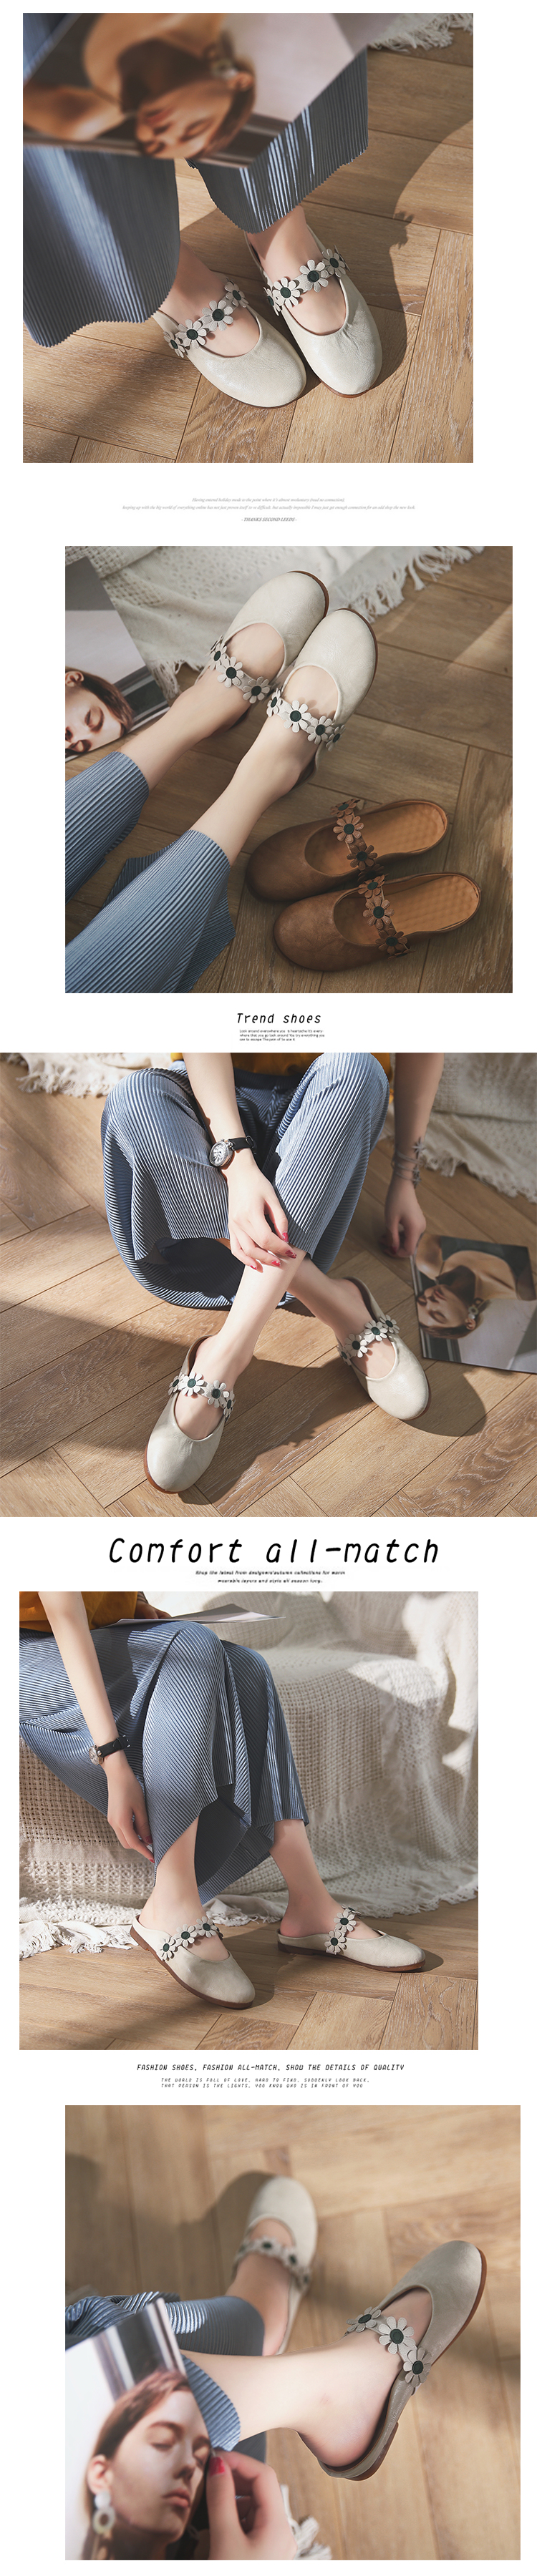 Women's Summer Shoes Baotou 2018 Summer Flower Sexy Sweet Comfortable, Casual Flat Bottomed Women's Leather Shoes6.15 6